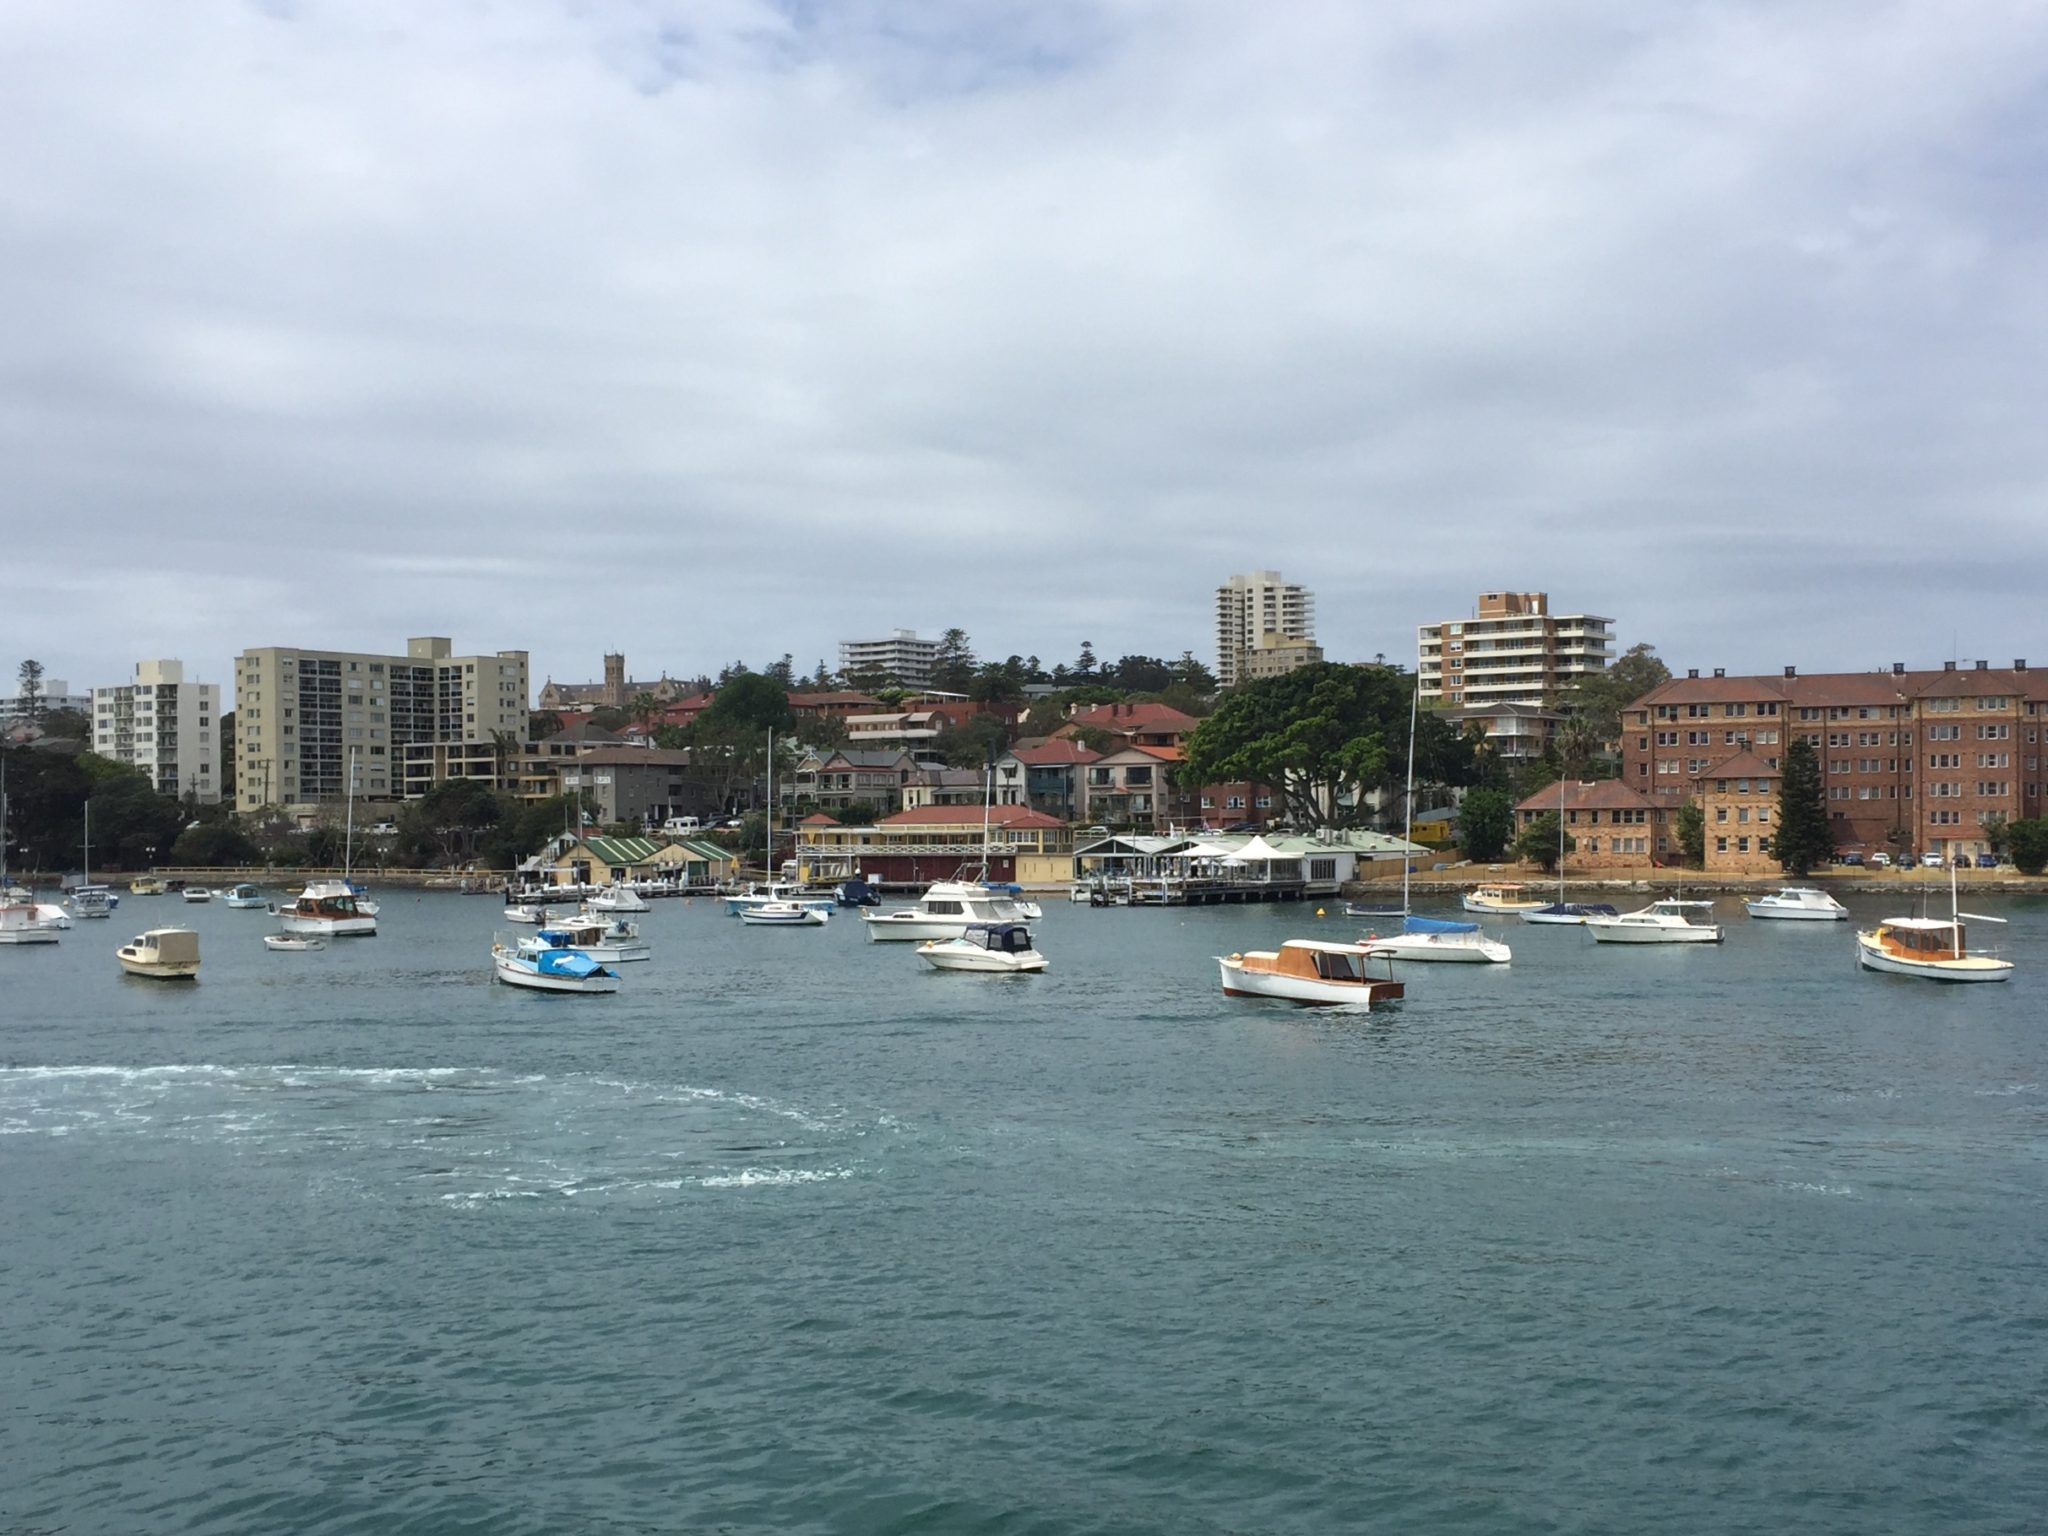 View from the ferry to Manly